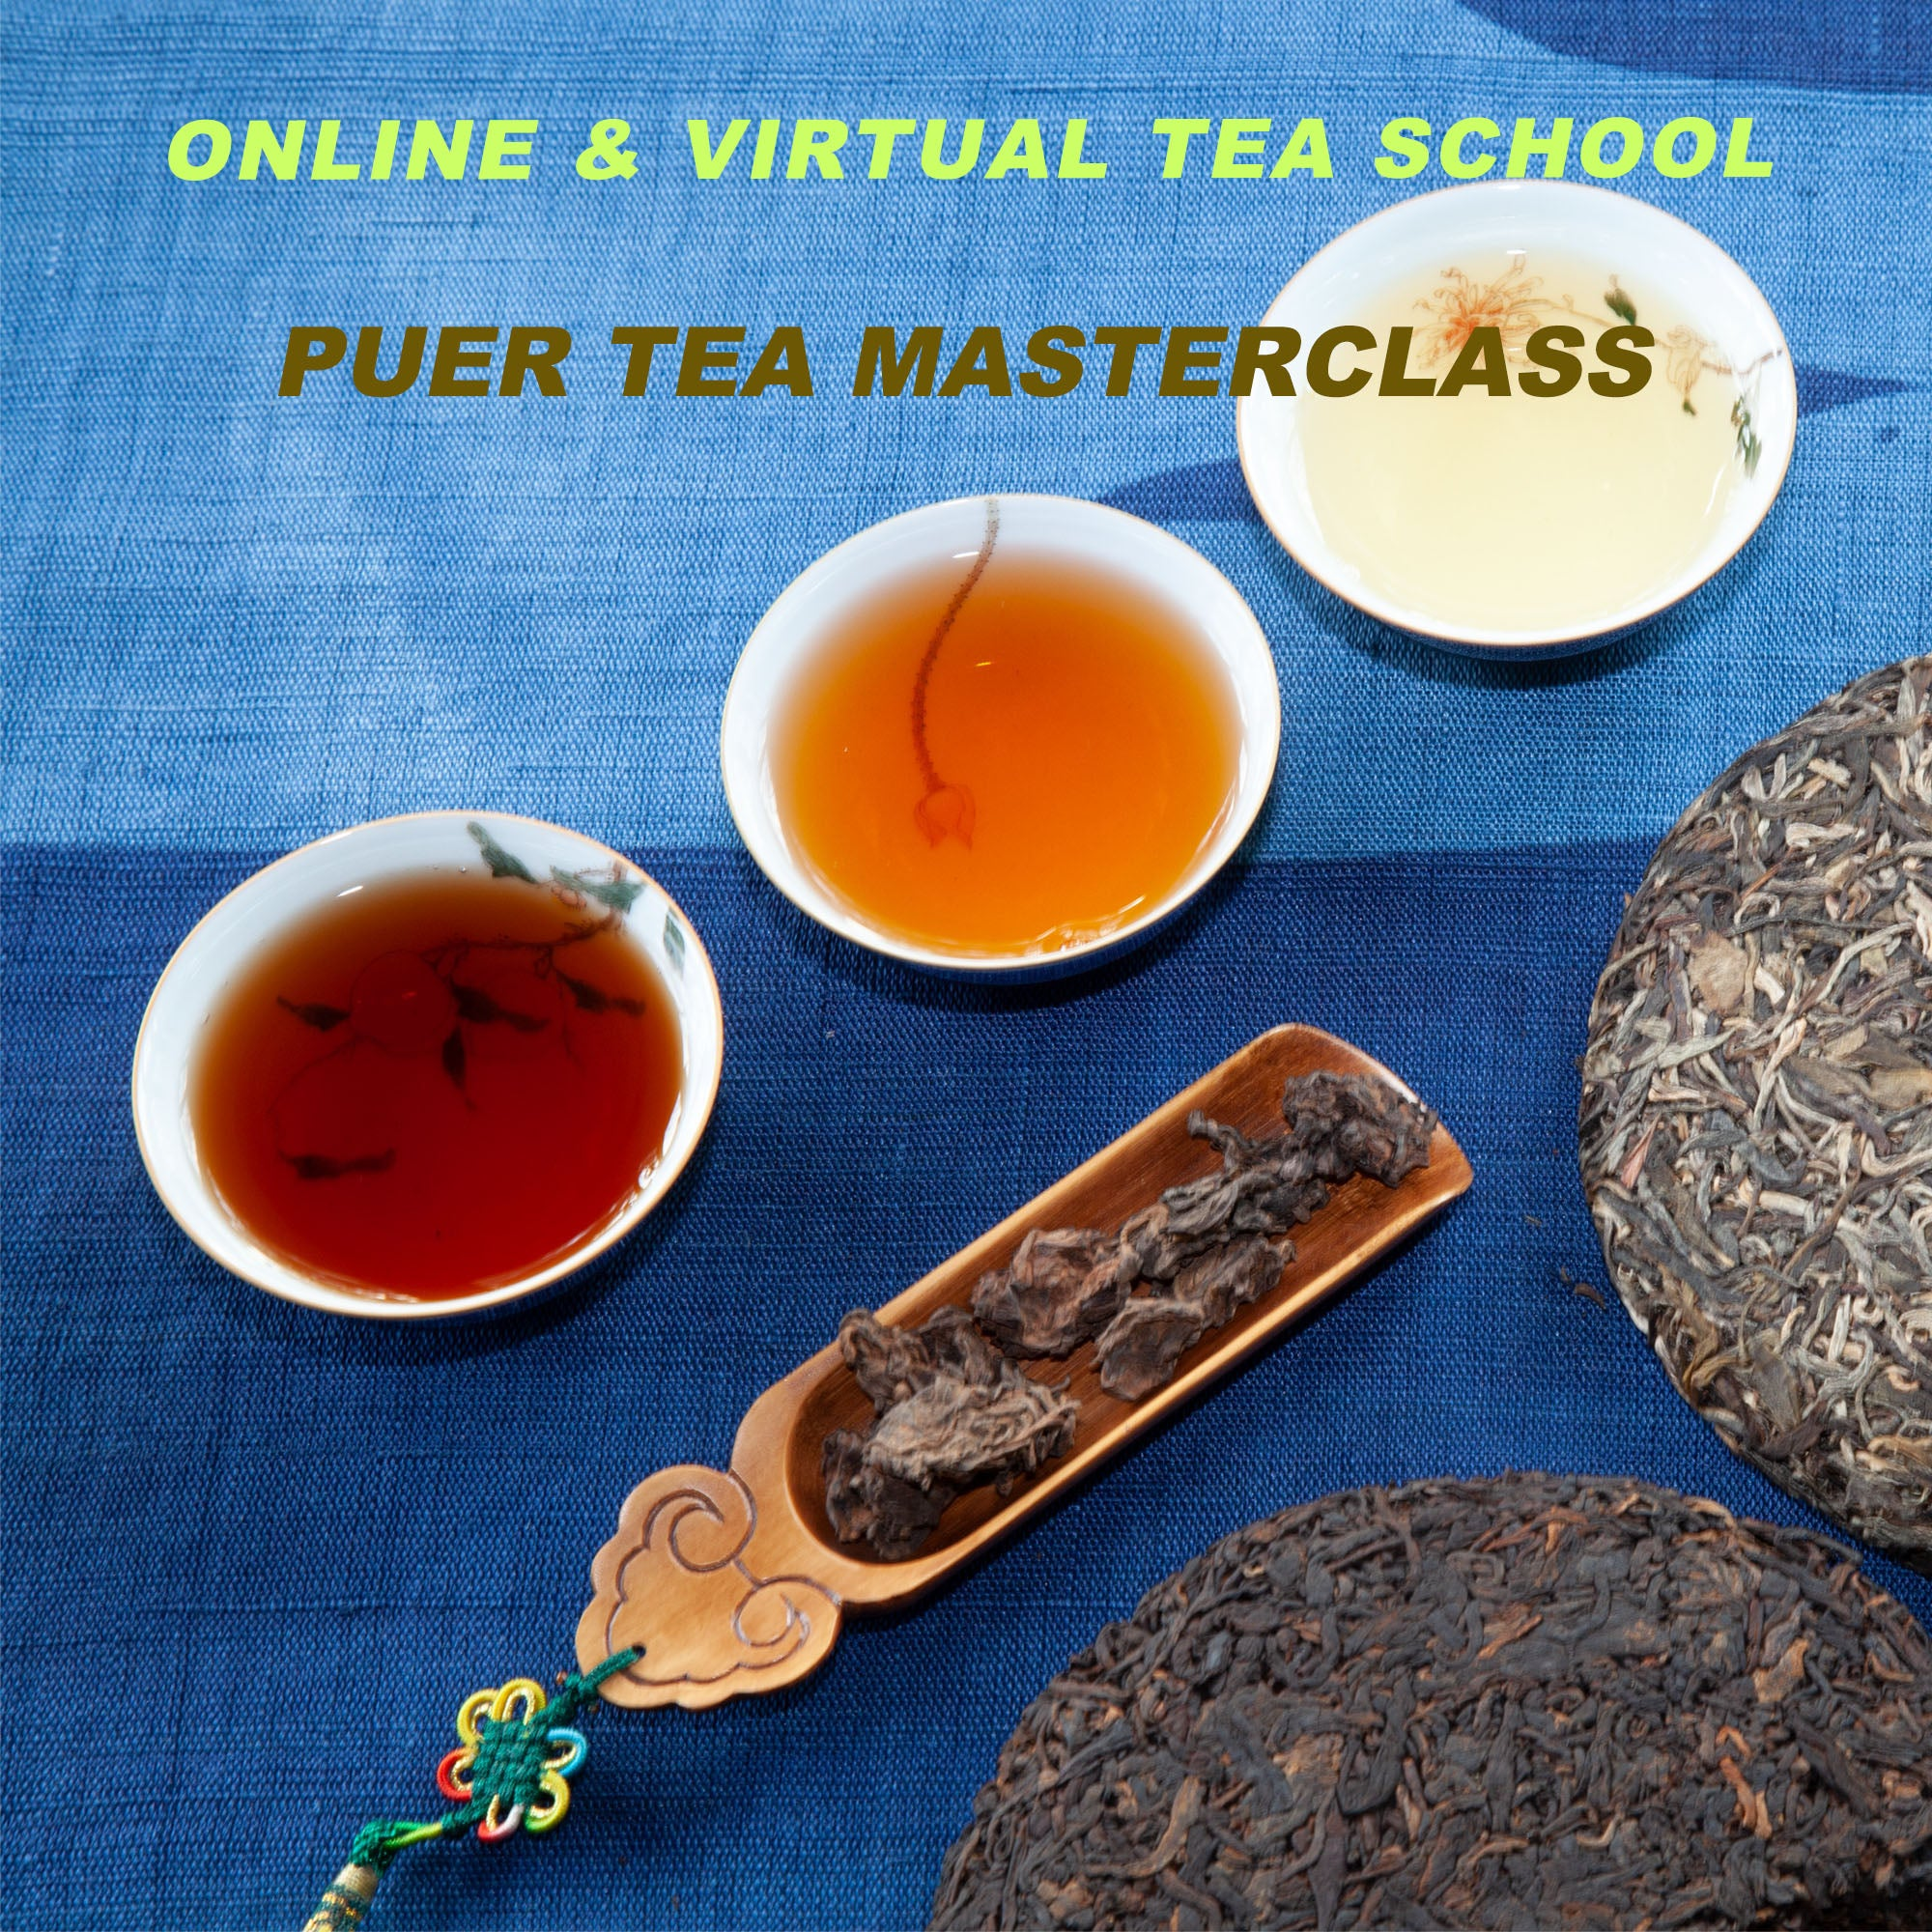 VIRTUAL PUER TEA MASTERCLASS